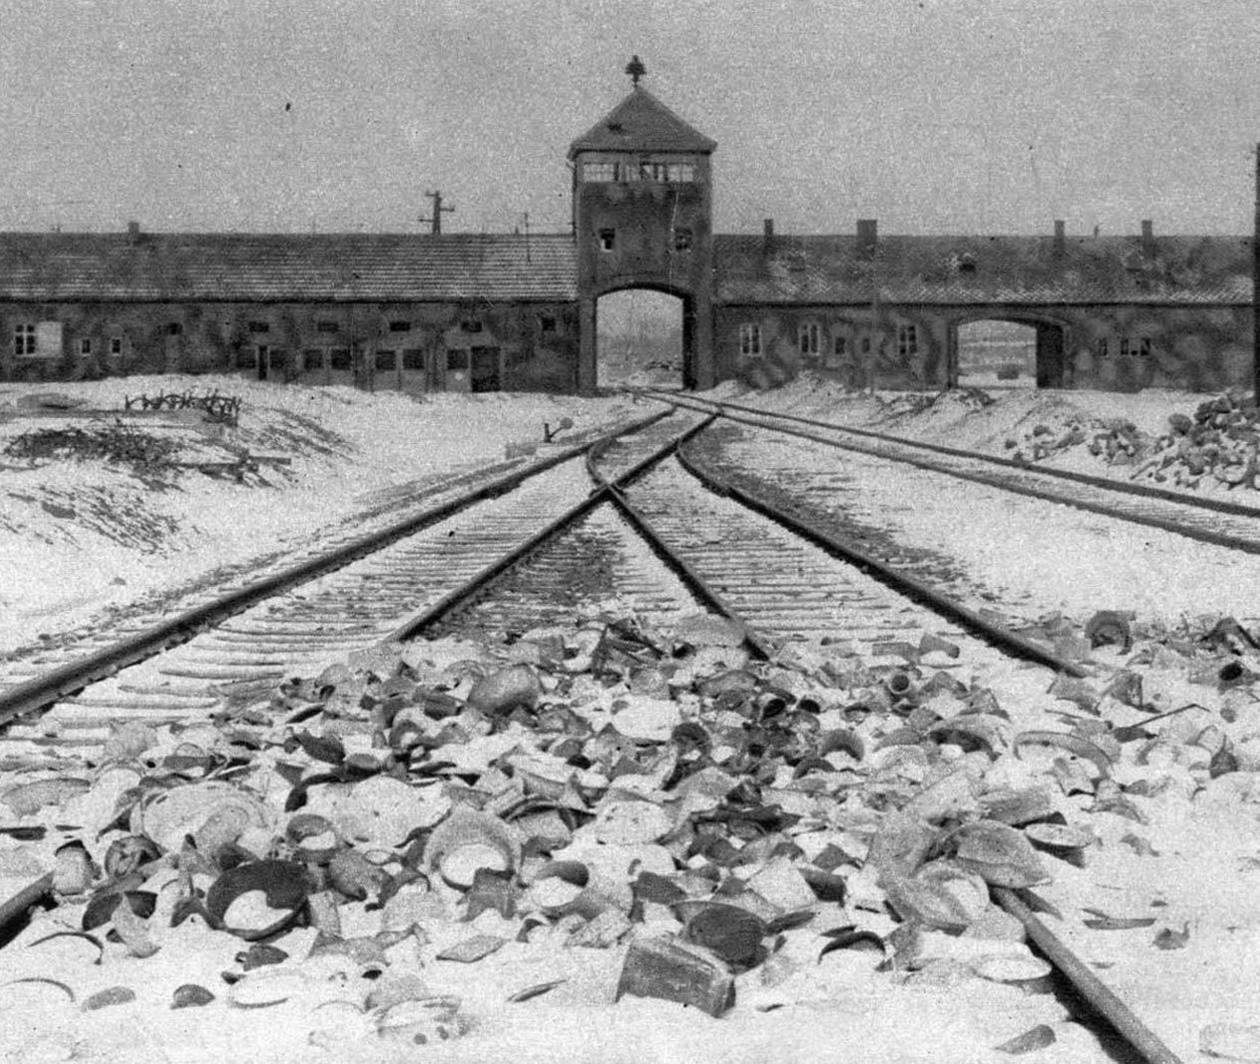 The Holocaust: an Introduction - Part 2